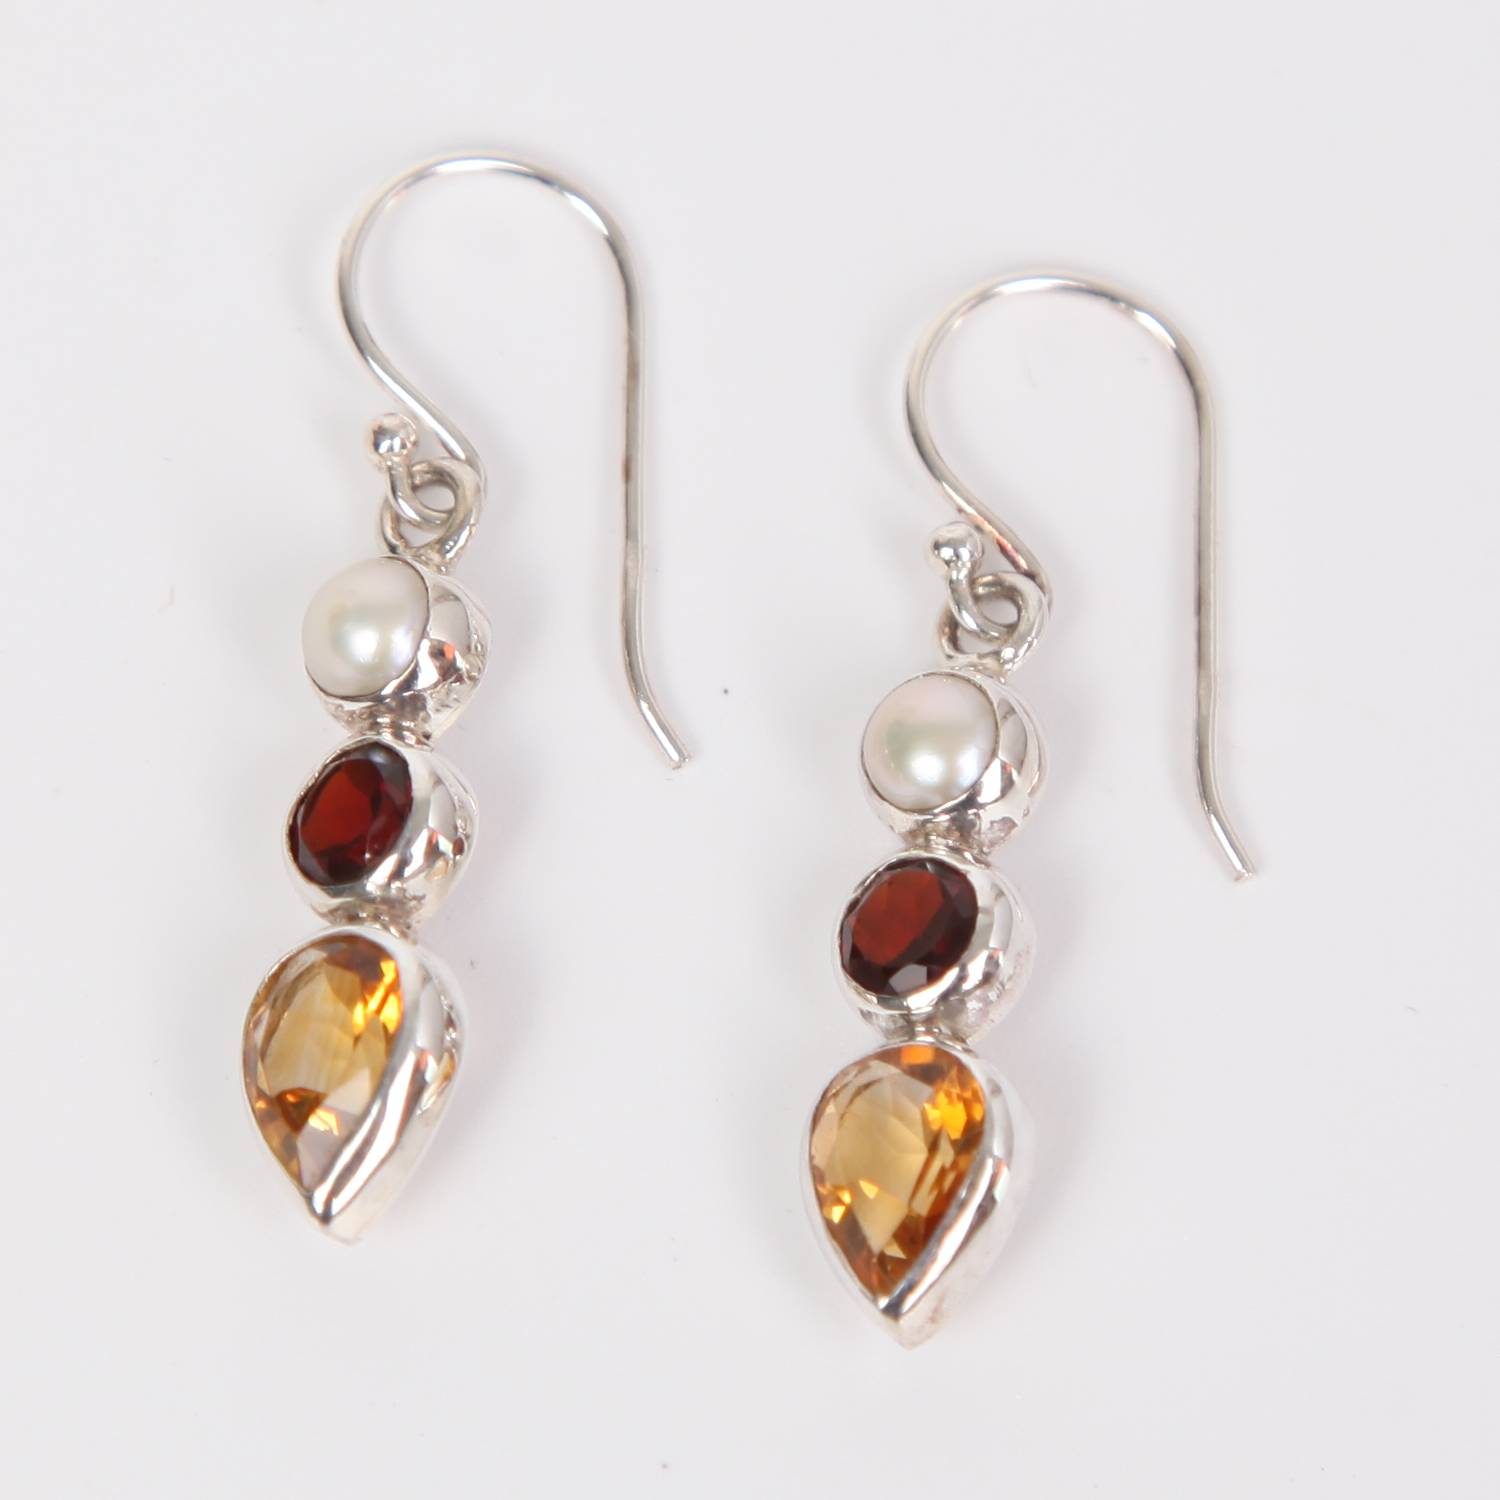 Citrine Sterling Silver Earrings with Garnet and Fresh Water Pearl